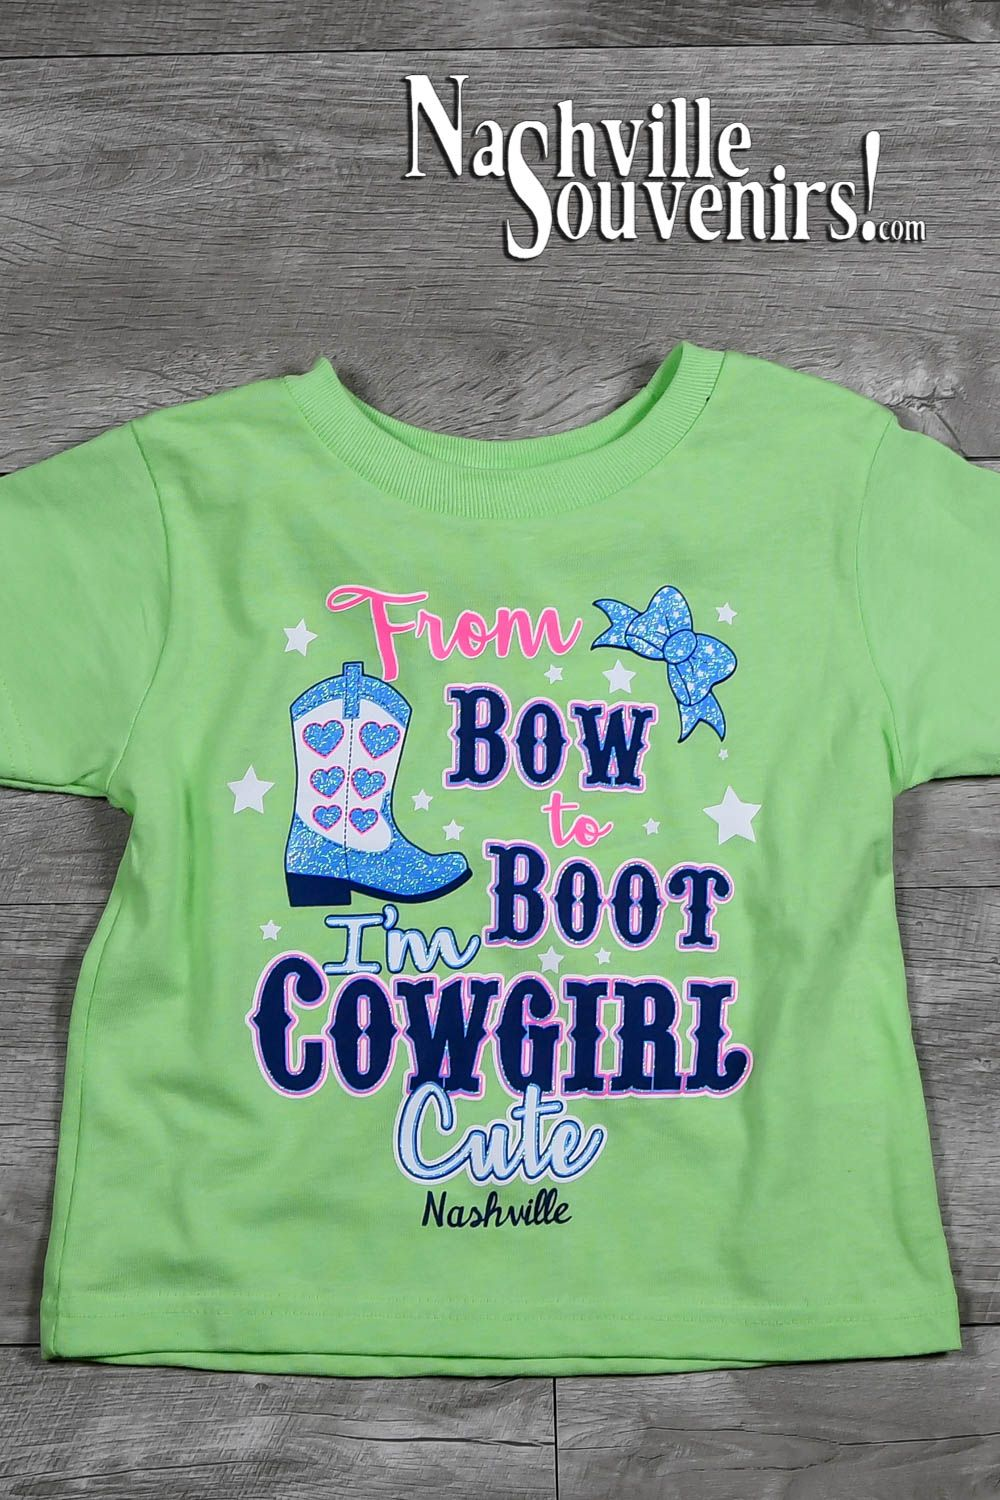 dbd6385b1 Colorful design on a bright green T-shirt that reads, From Bow to Boot I'm  Cowgirl Cute NASHVILLE Toddlers T-Shirt.